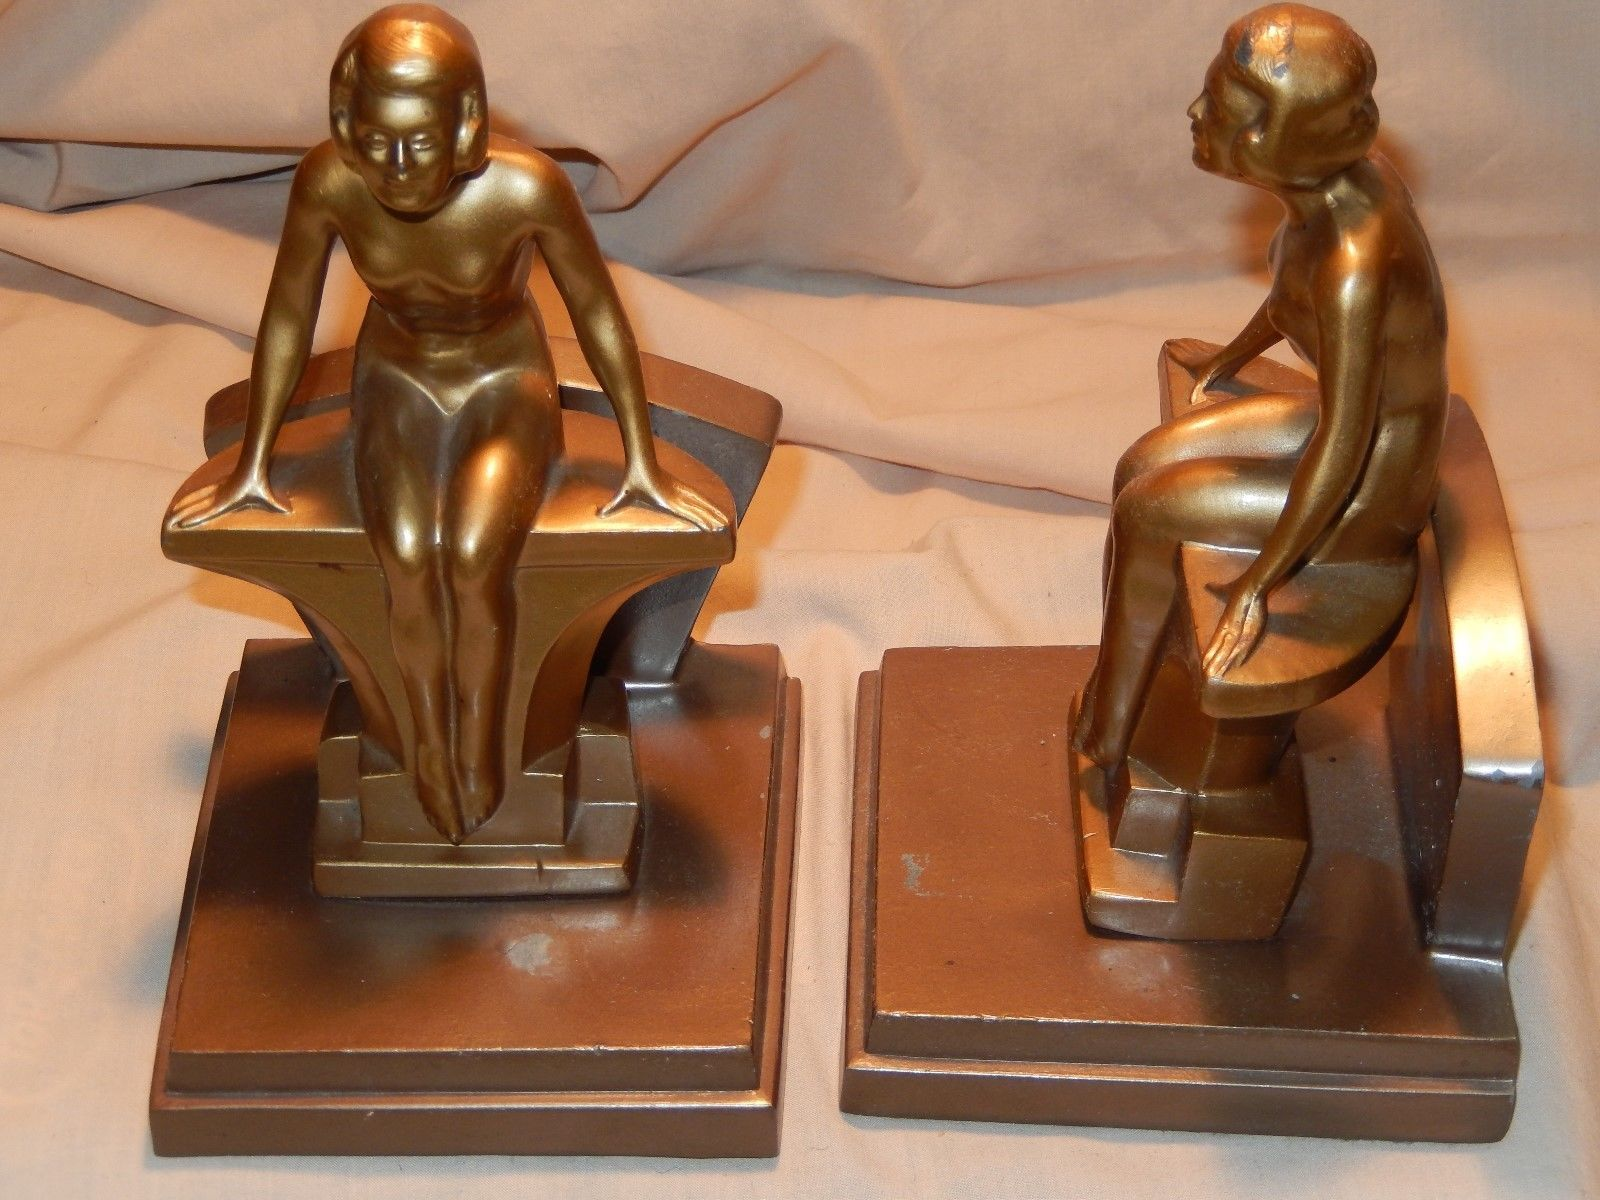 Nuart FRANKART Ronson Style Art Deco Period Nude Bookends Pair | eBay